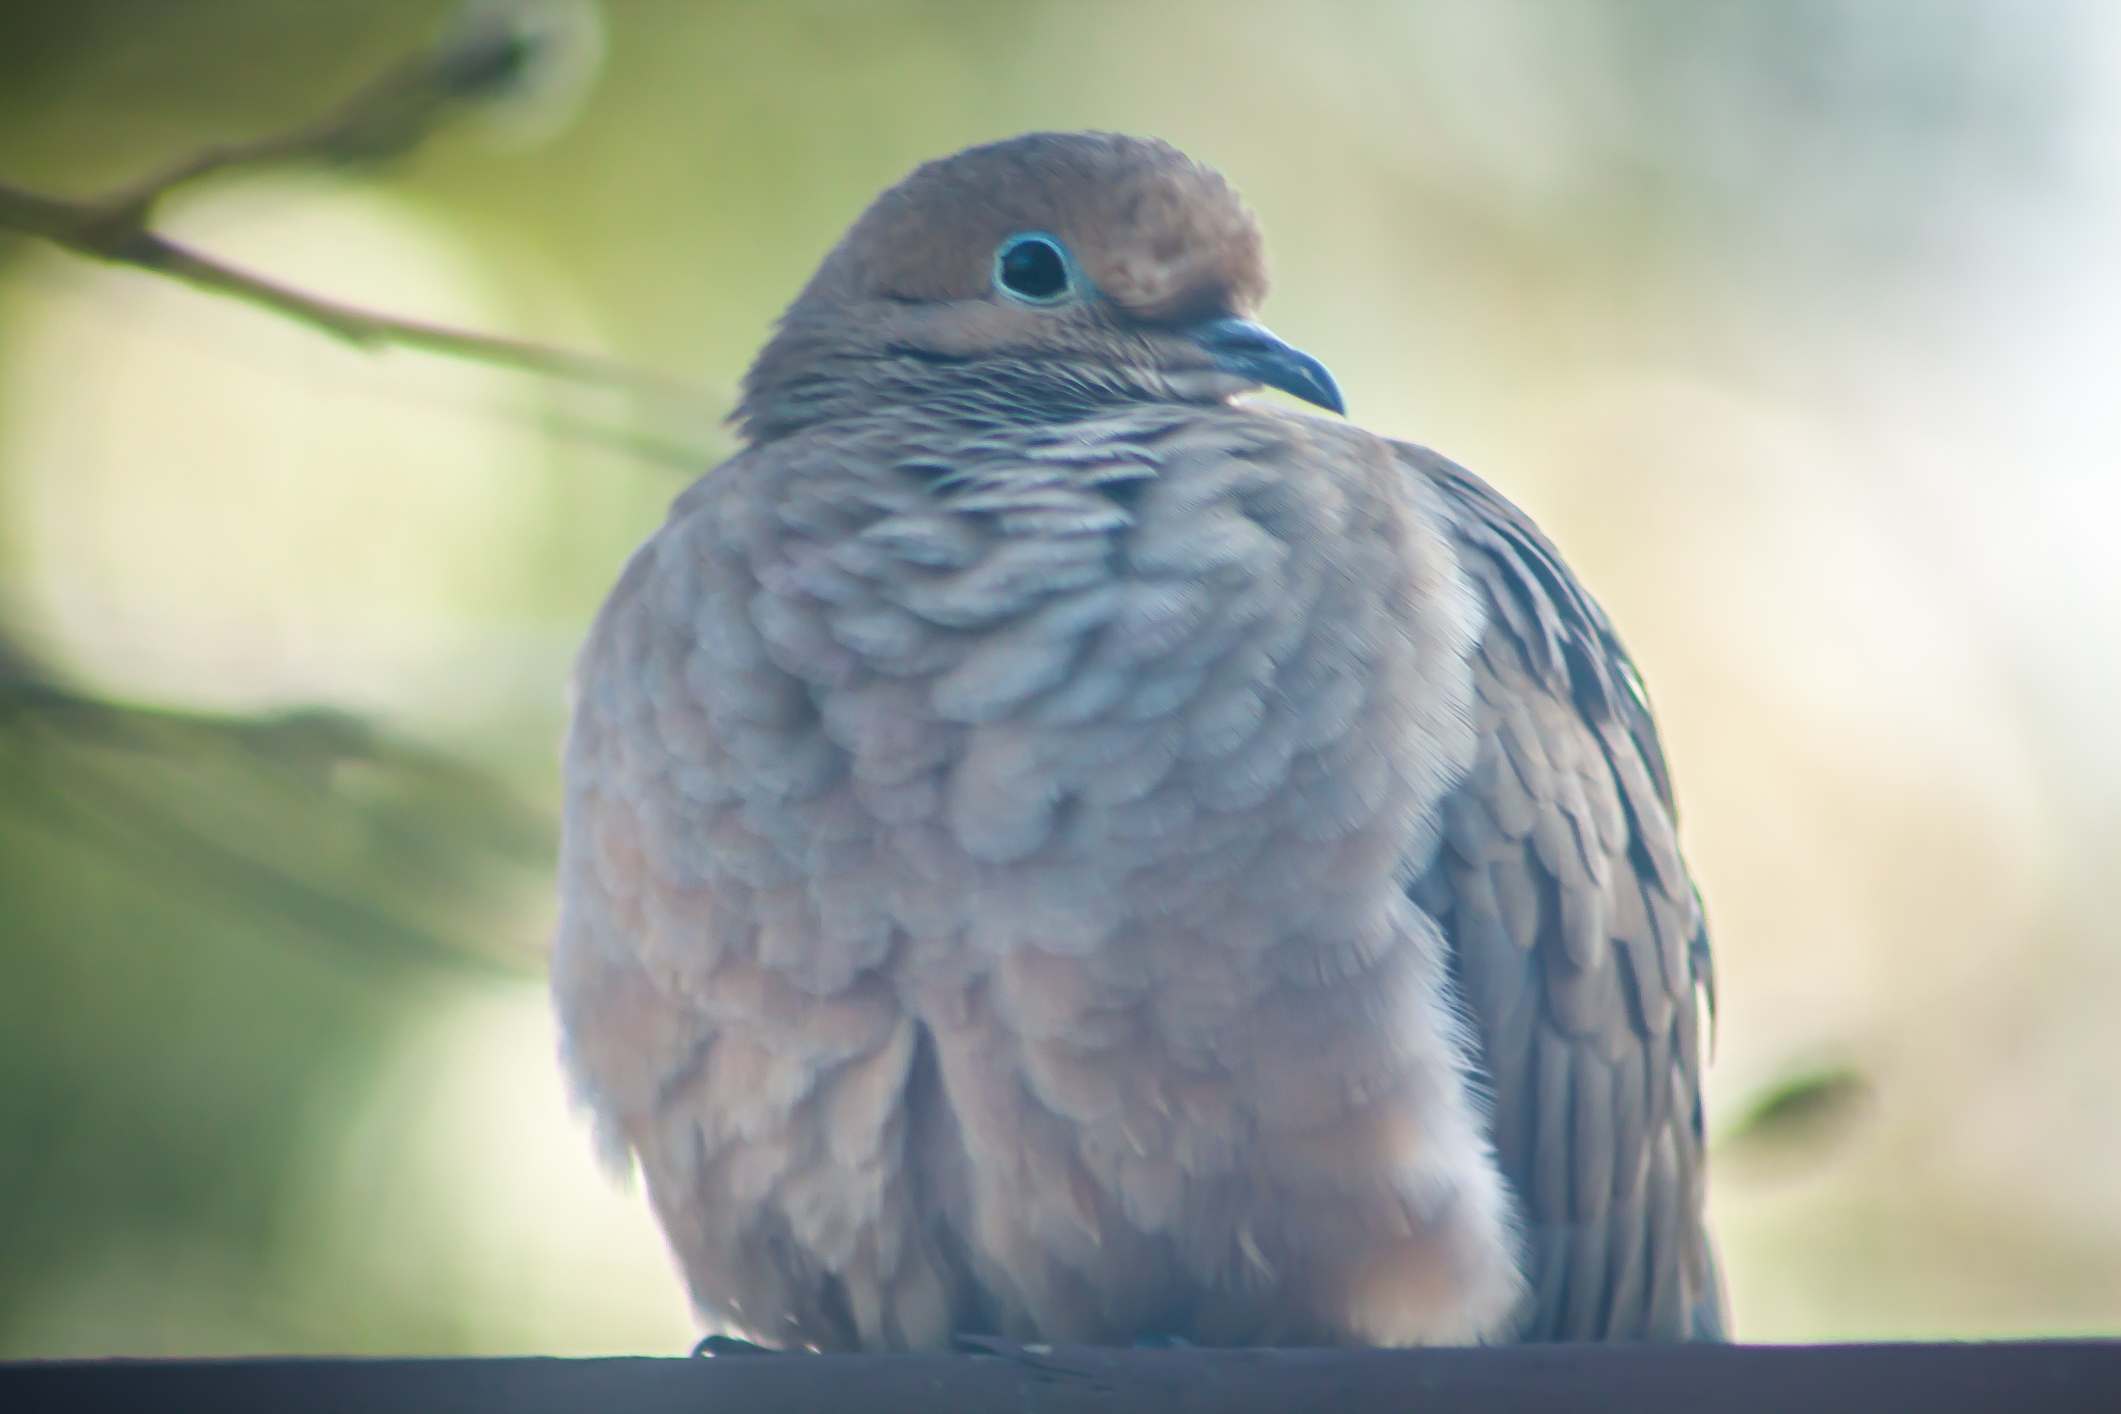 A dove puffs his chest to keep warm in winter NotSoSAHM